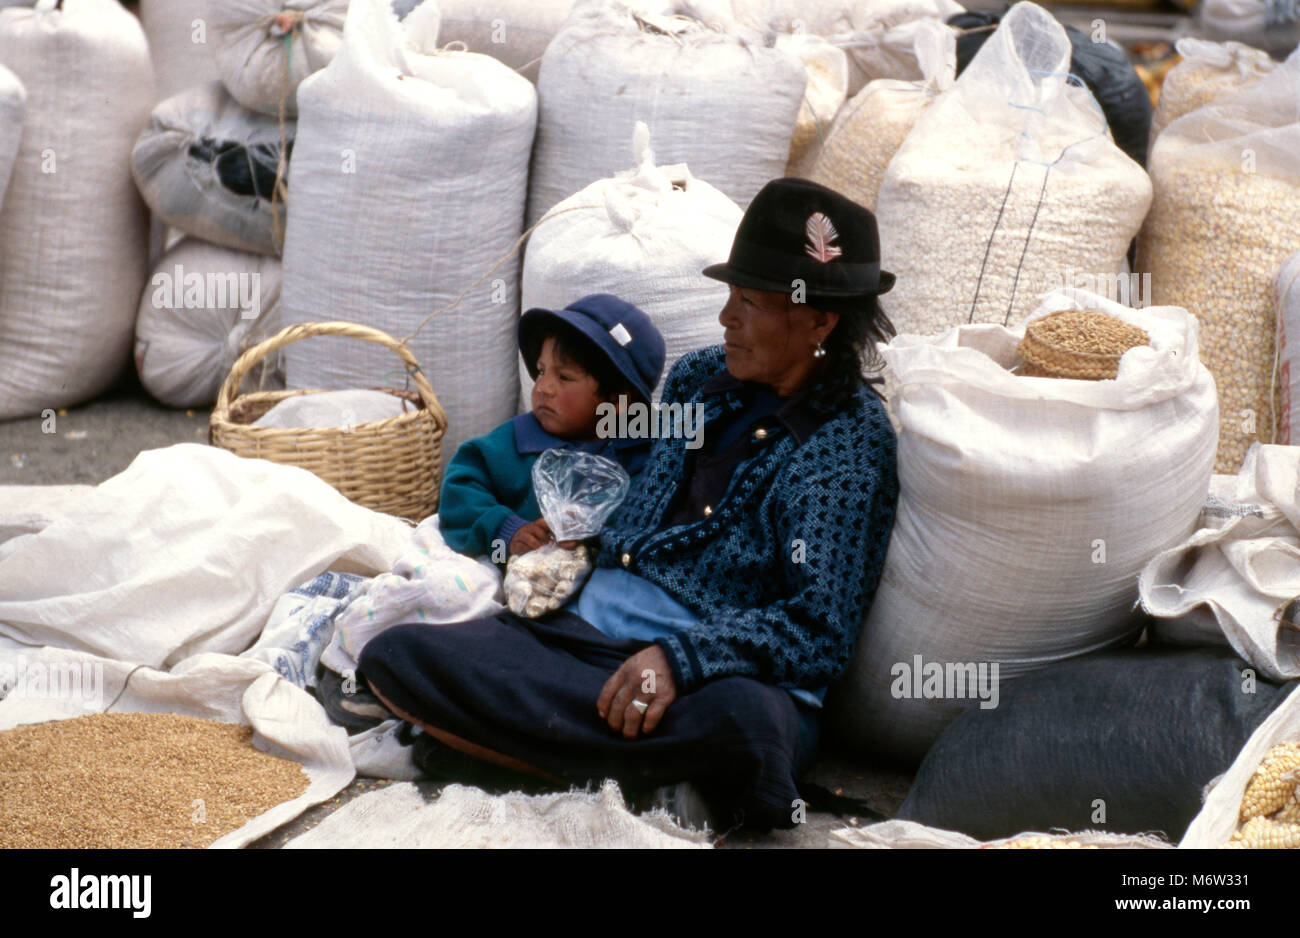 An indigenous, ethnic Quichua (Quechua) woman with her son selling grain at the market in Latacunda, Ecuador. - Stock Image